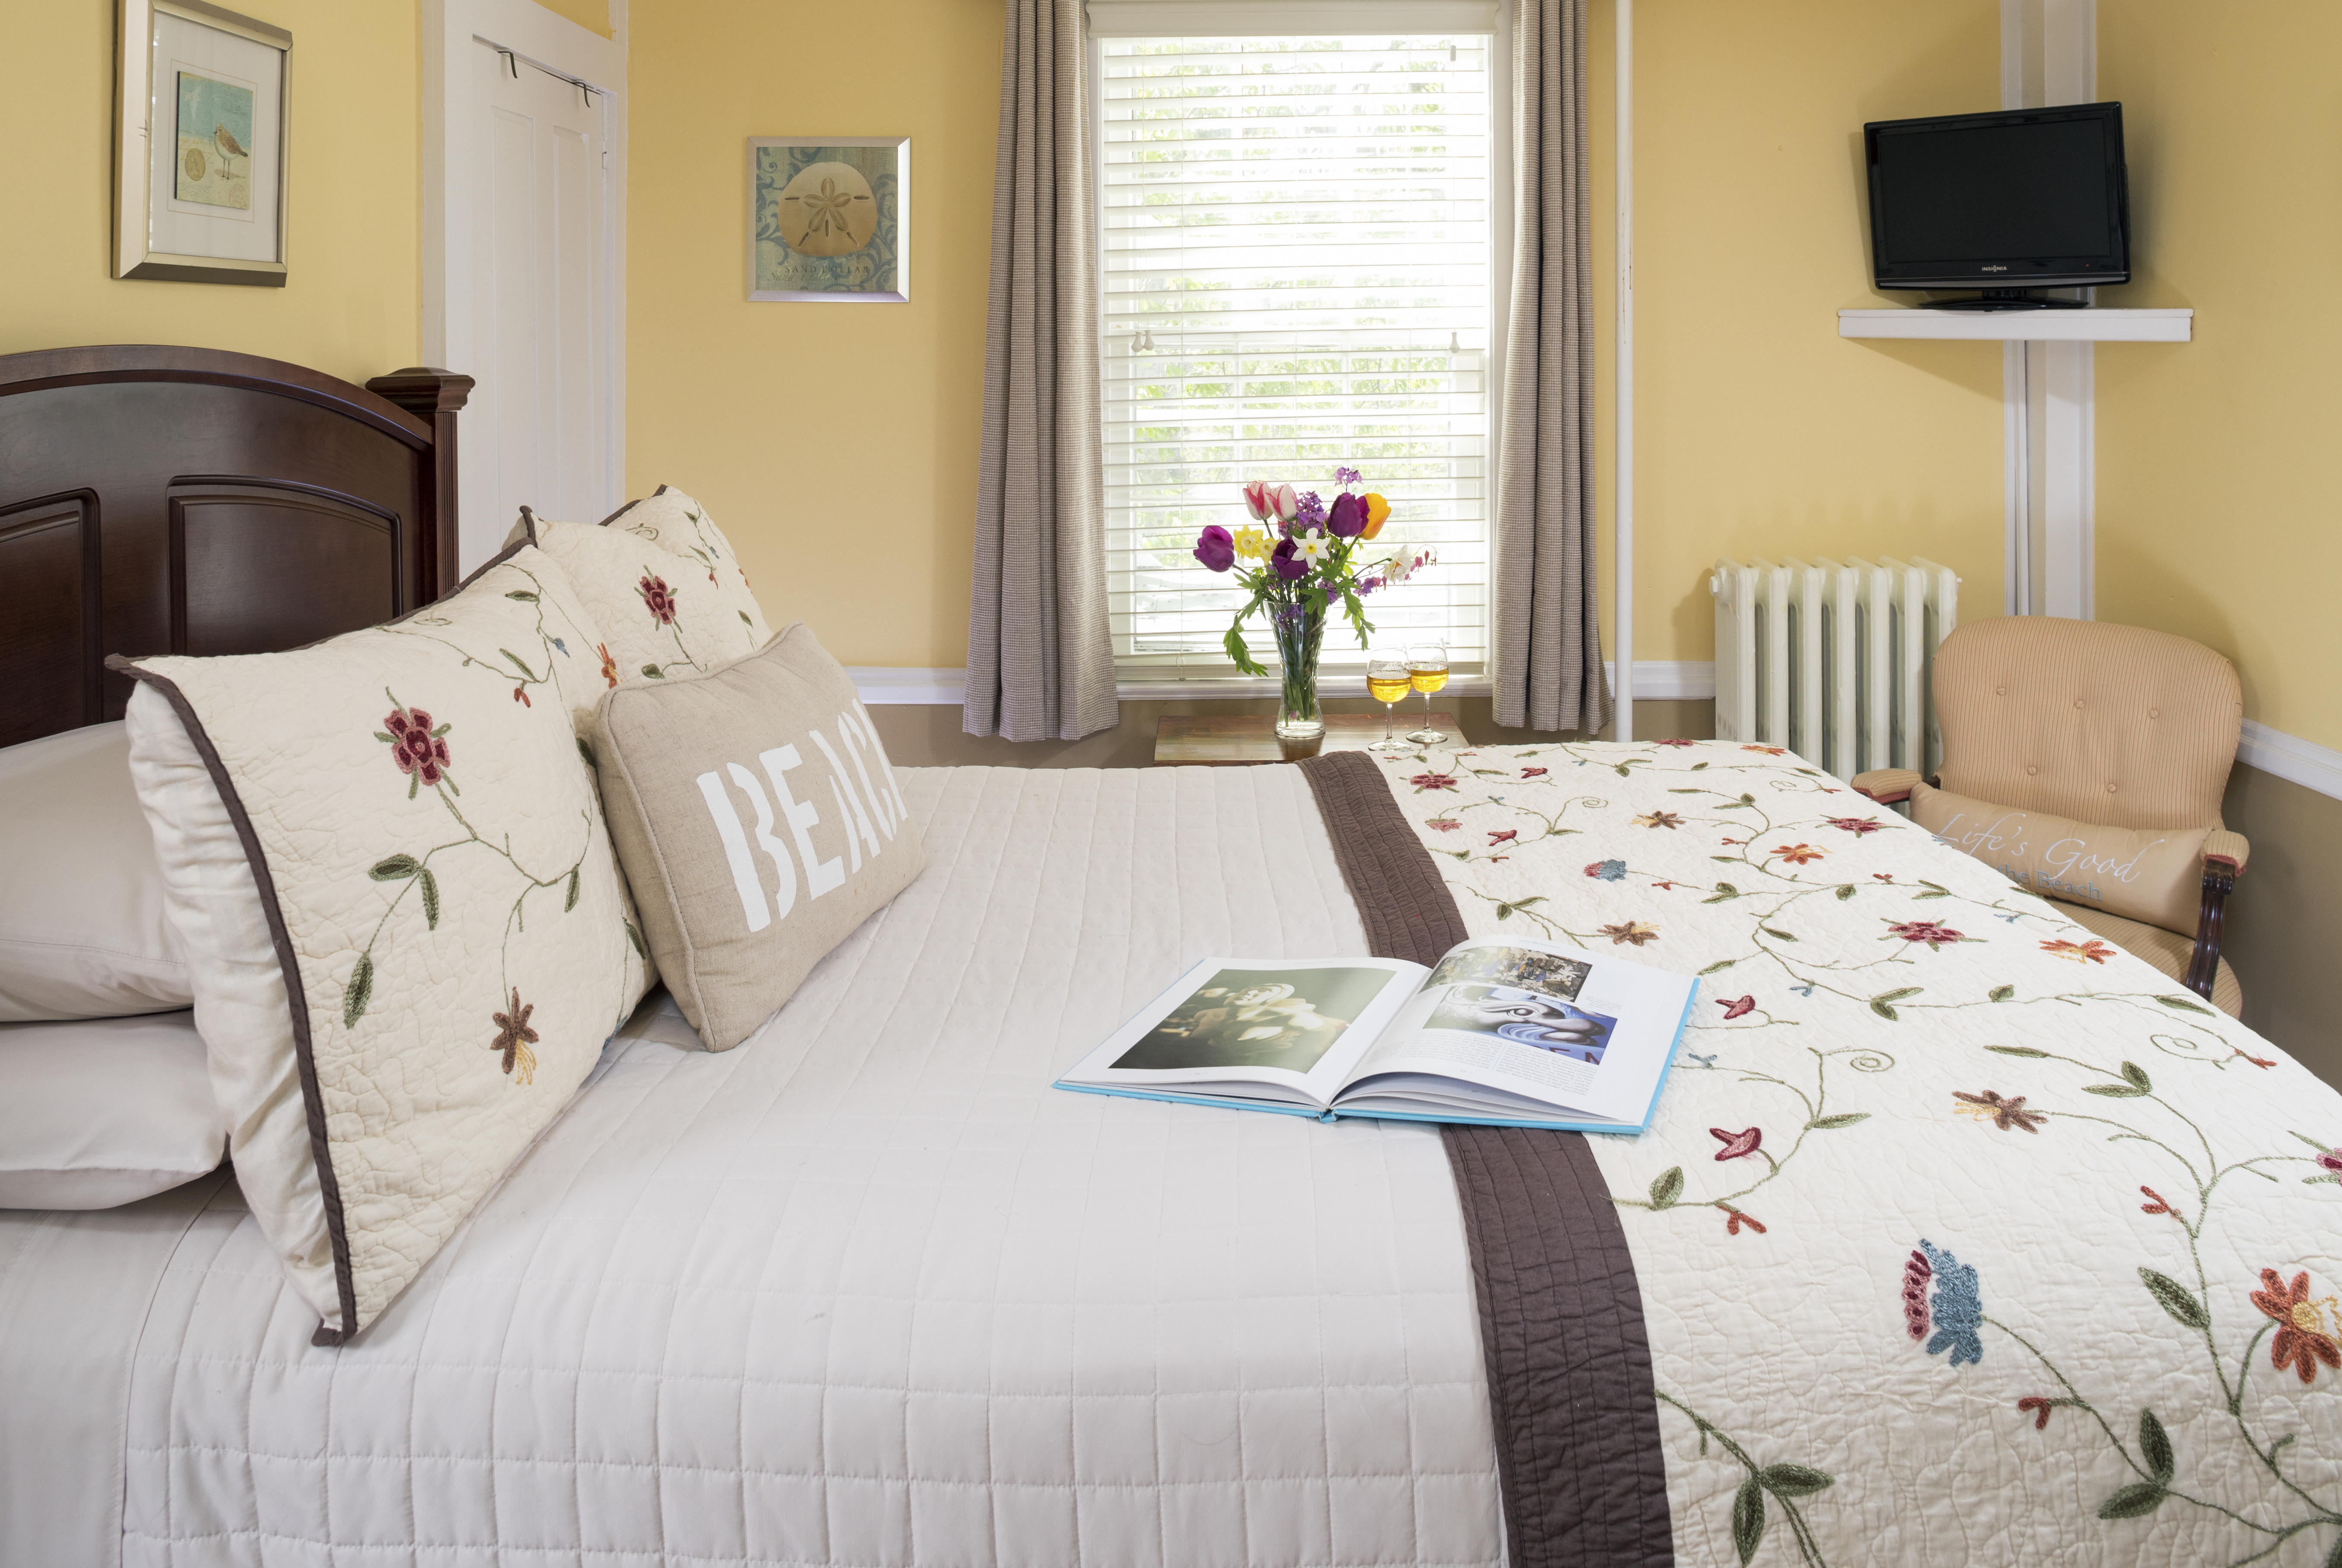 Nauset Light bed with book and flowers